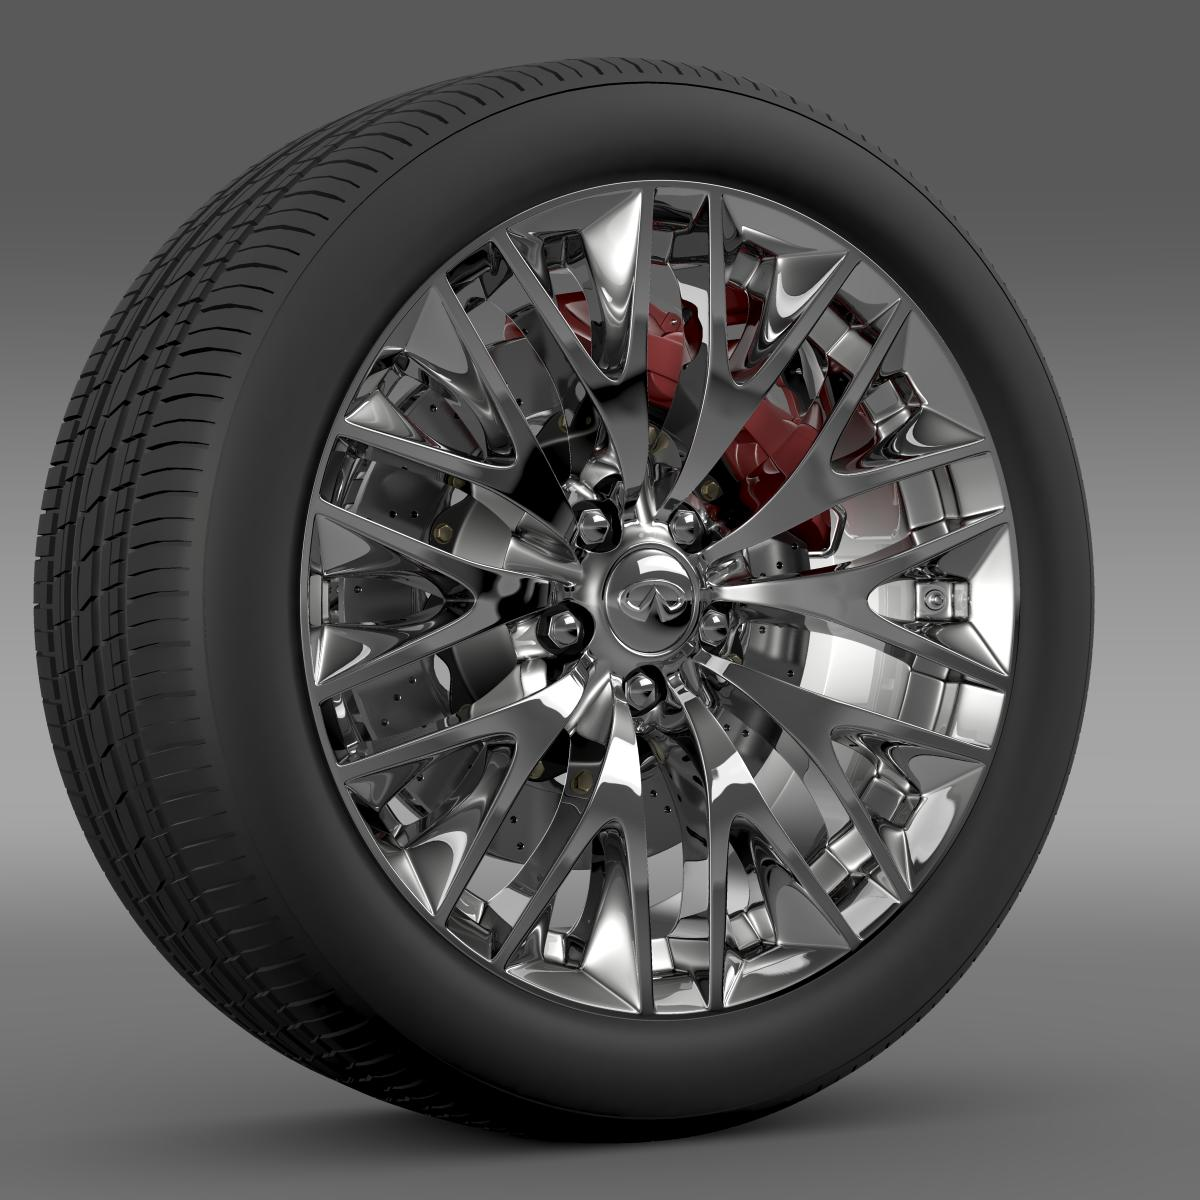 infinity ml wheel 3d model 3ds max fbx c4d lwo ma mb hrc xsi obj 210699